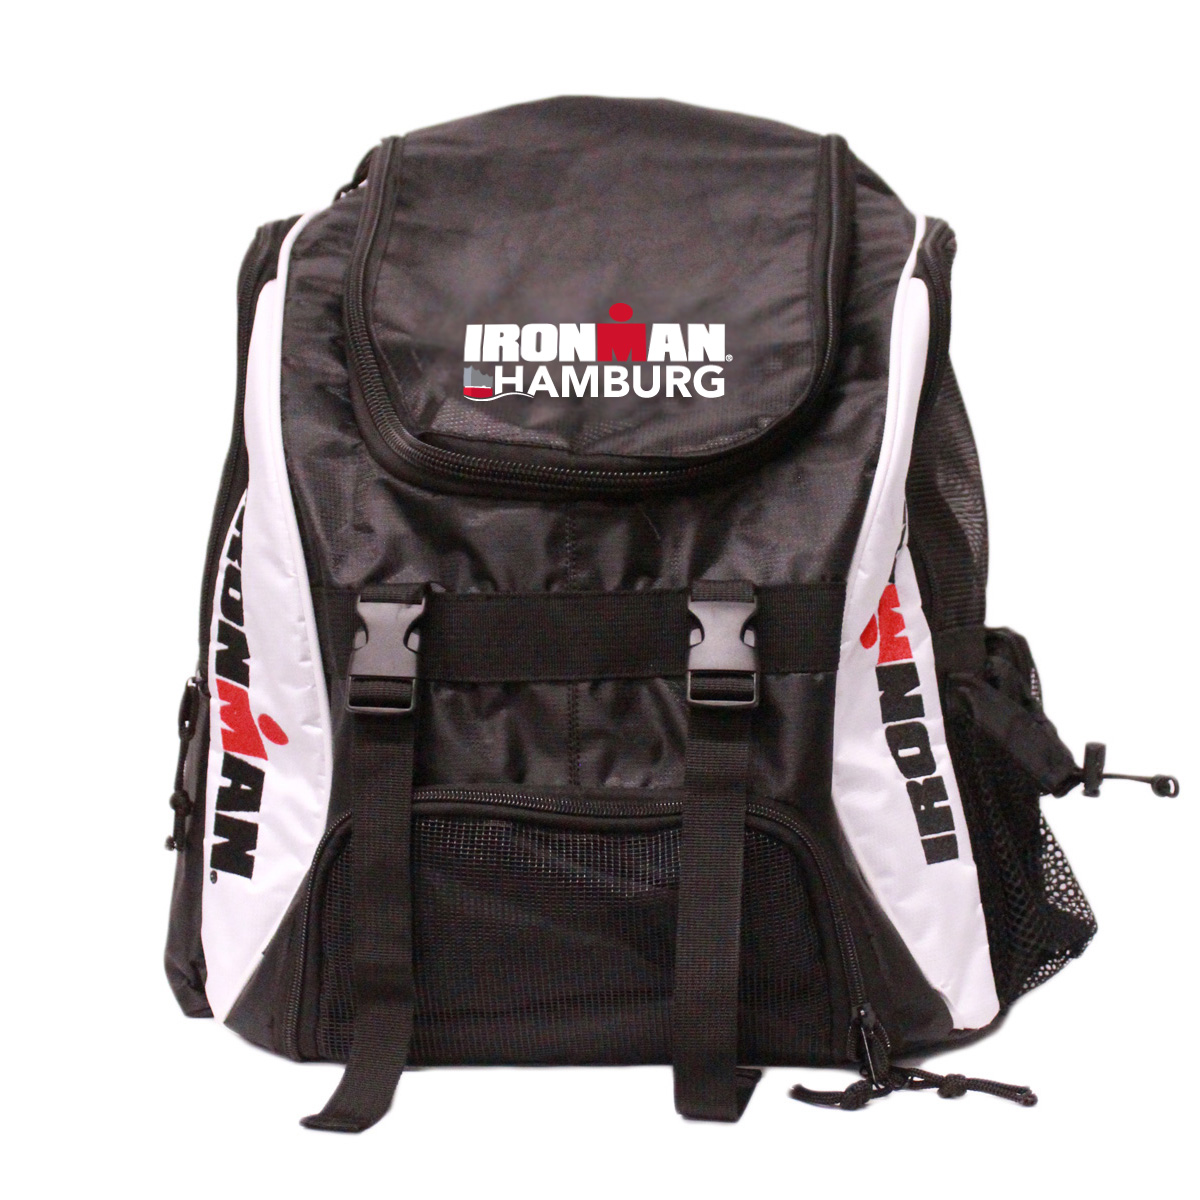 IRONMAN HAMBURG 2019 EVENT BACKPACK